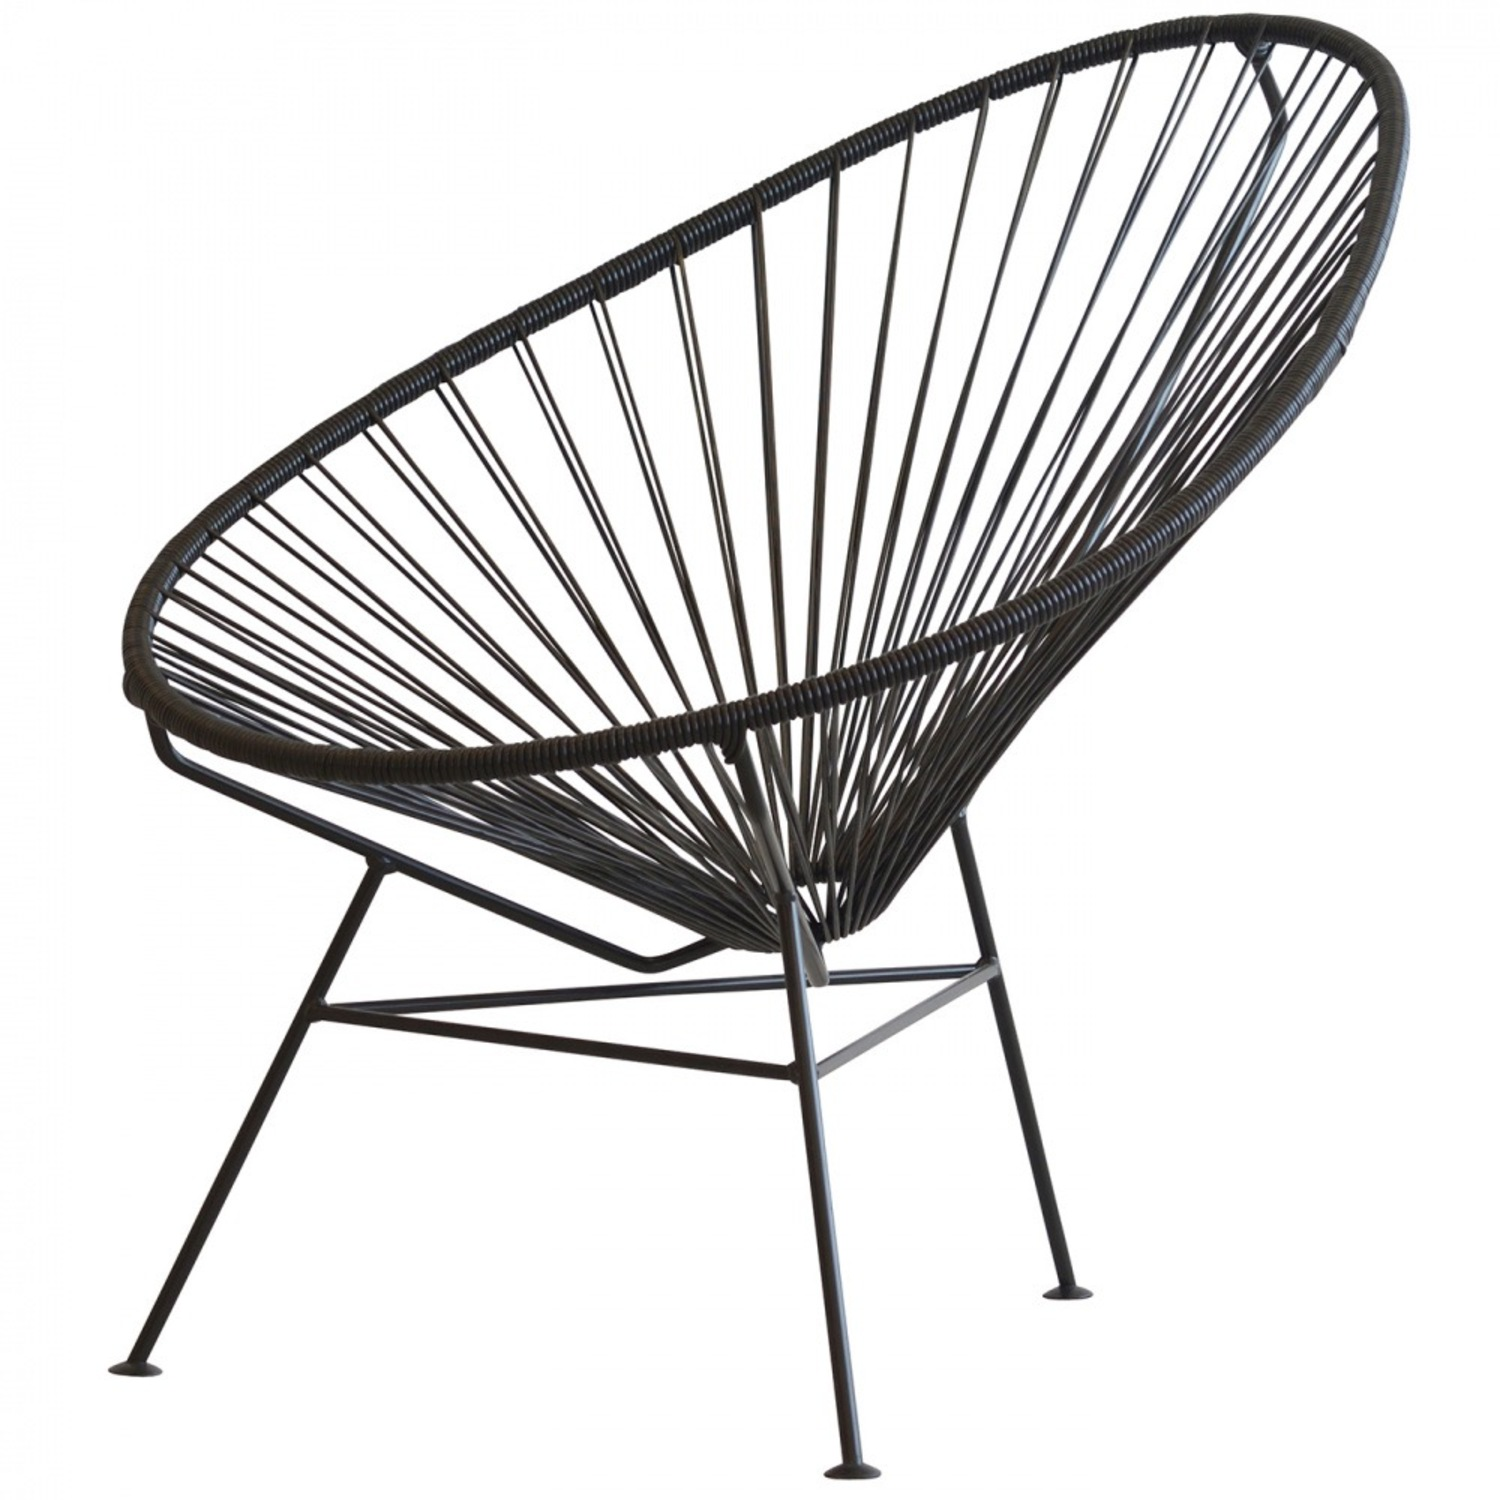 Crate & Barrel Black Spindle Lounge Chair - image-5